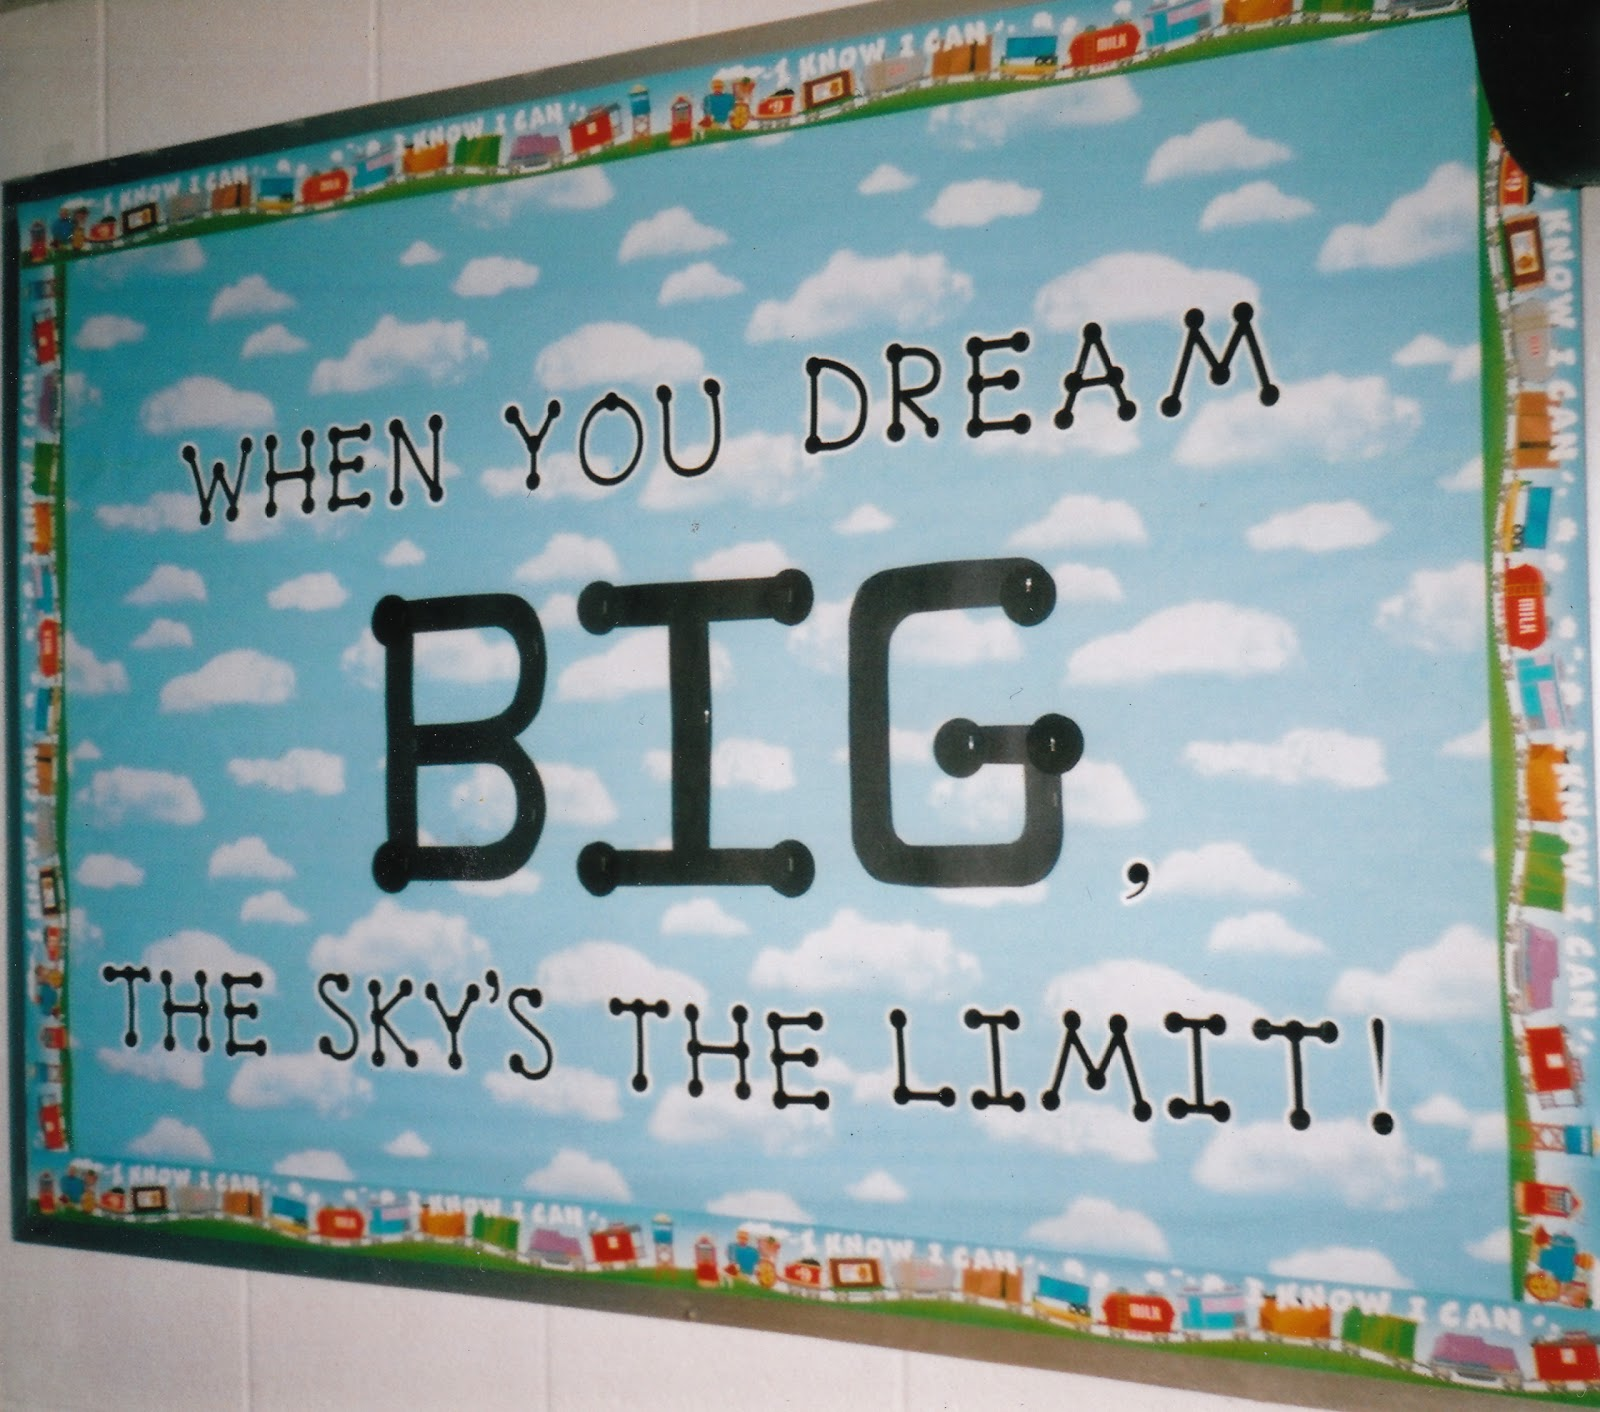 To acquire Quotes Fall for bulletin boards pictures trends